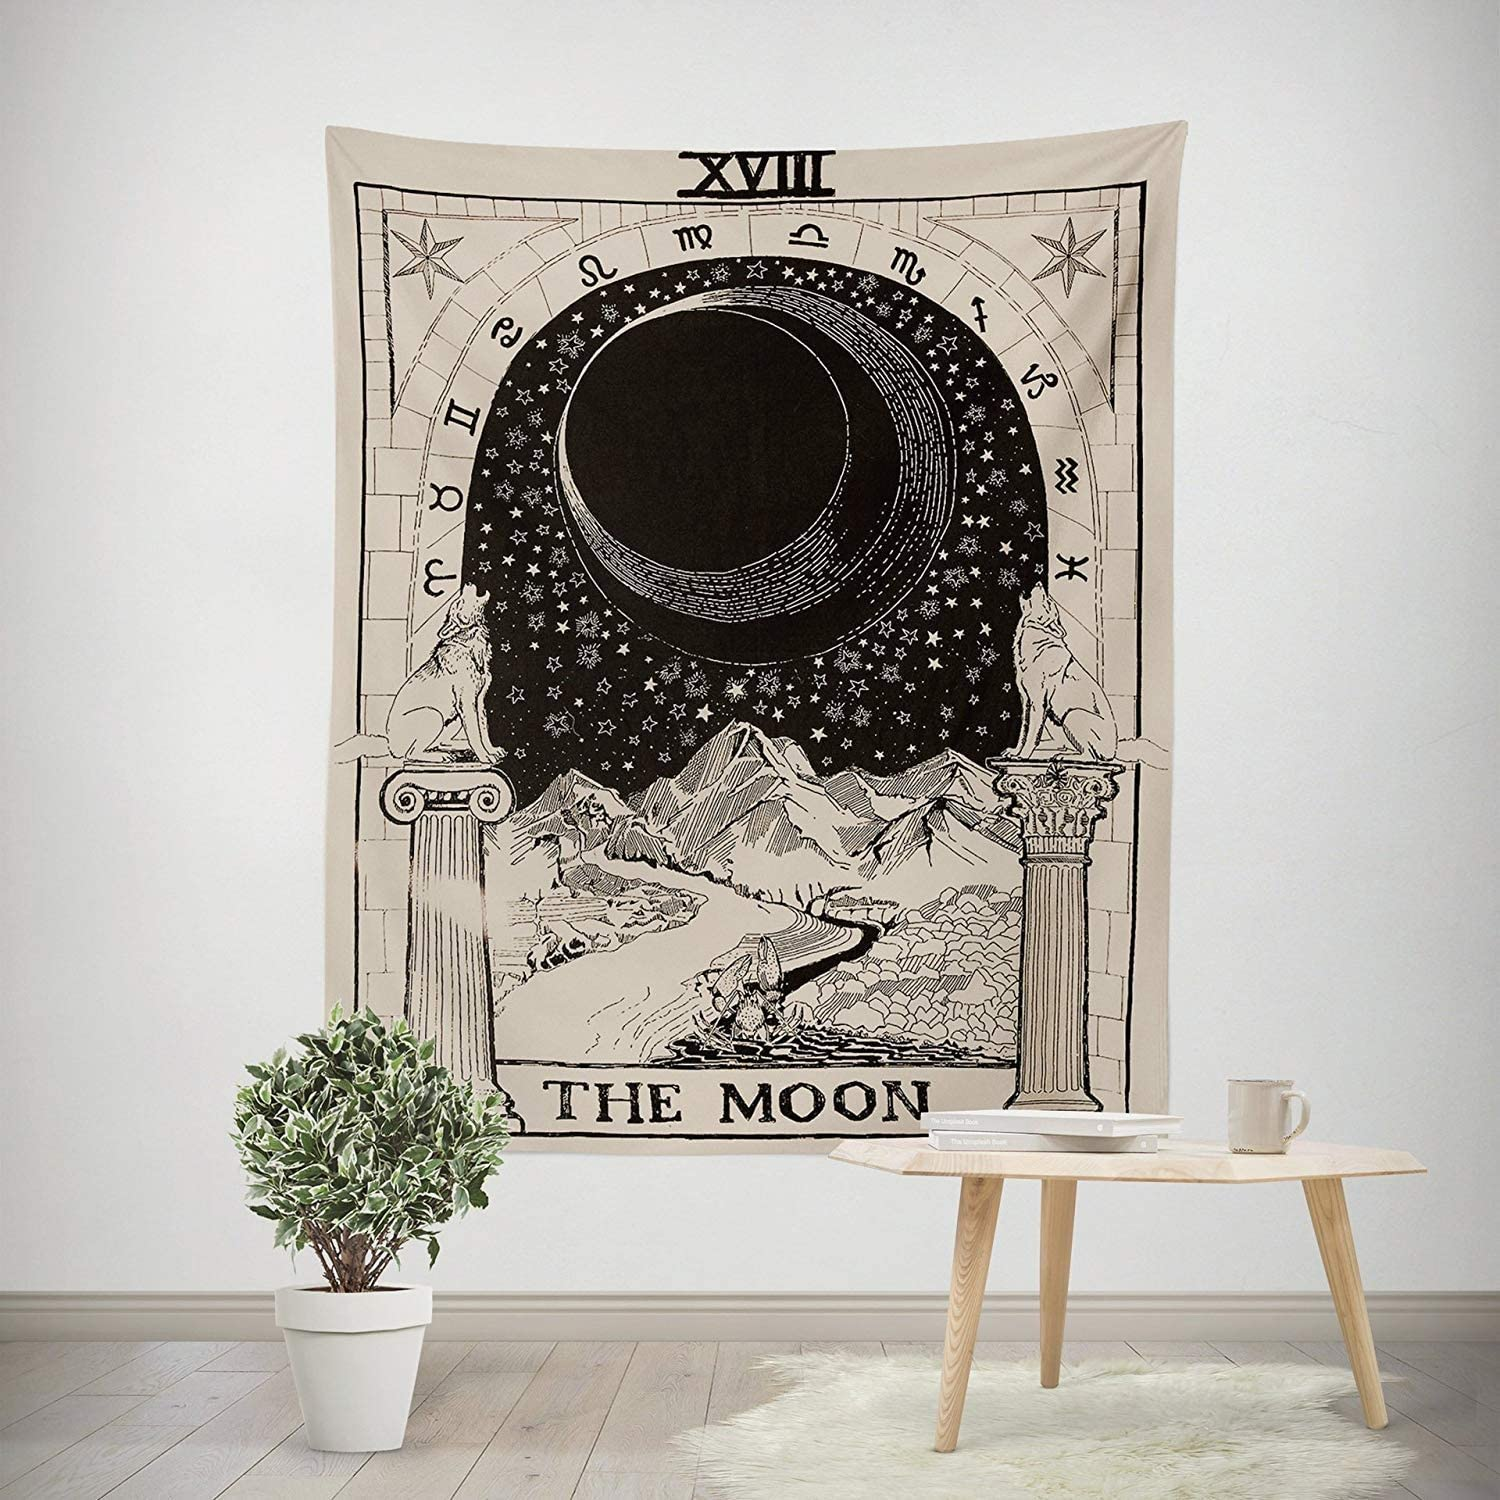 SOFTBATFY Tarot Tapestry The Moon The Star The Sun Tapestry Medieval Europe Divination Tapestry Wall Hanging Tapestries Mysterious Wall Tapestry Home Decor Large-58 * 79inches